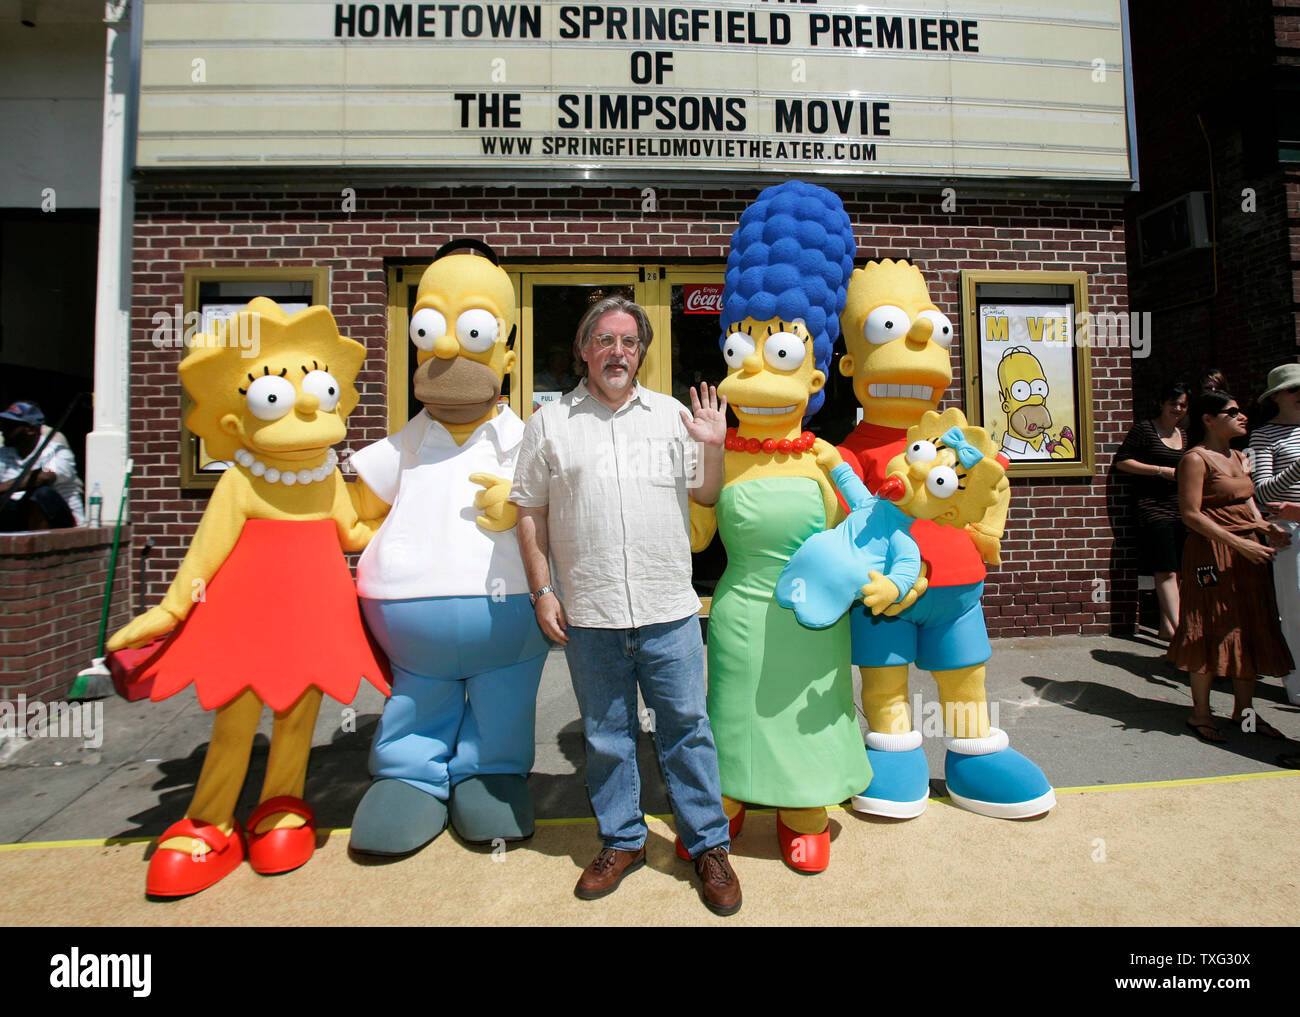 The Simpsons Movie Producer Matt Groening C Waves To The Crowd While Lined Up With The Characters From His Television Show And Movie At The Hometown Premier Of The Simpsons Movie At